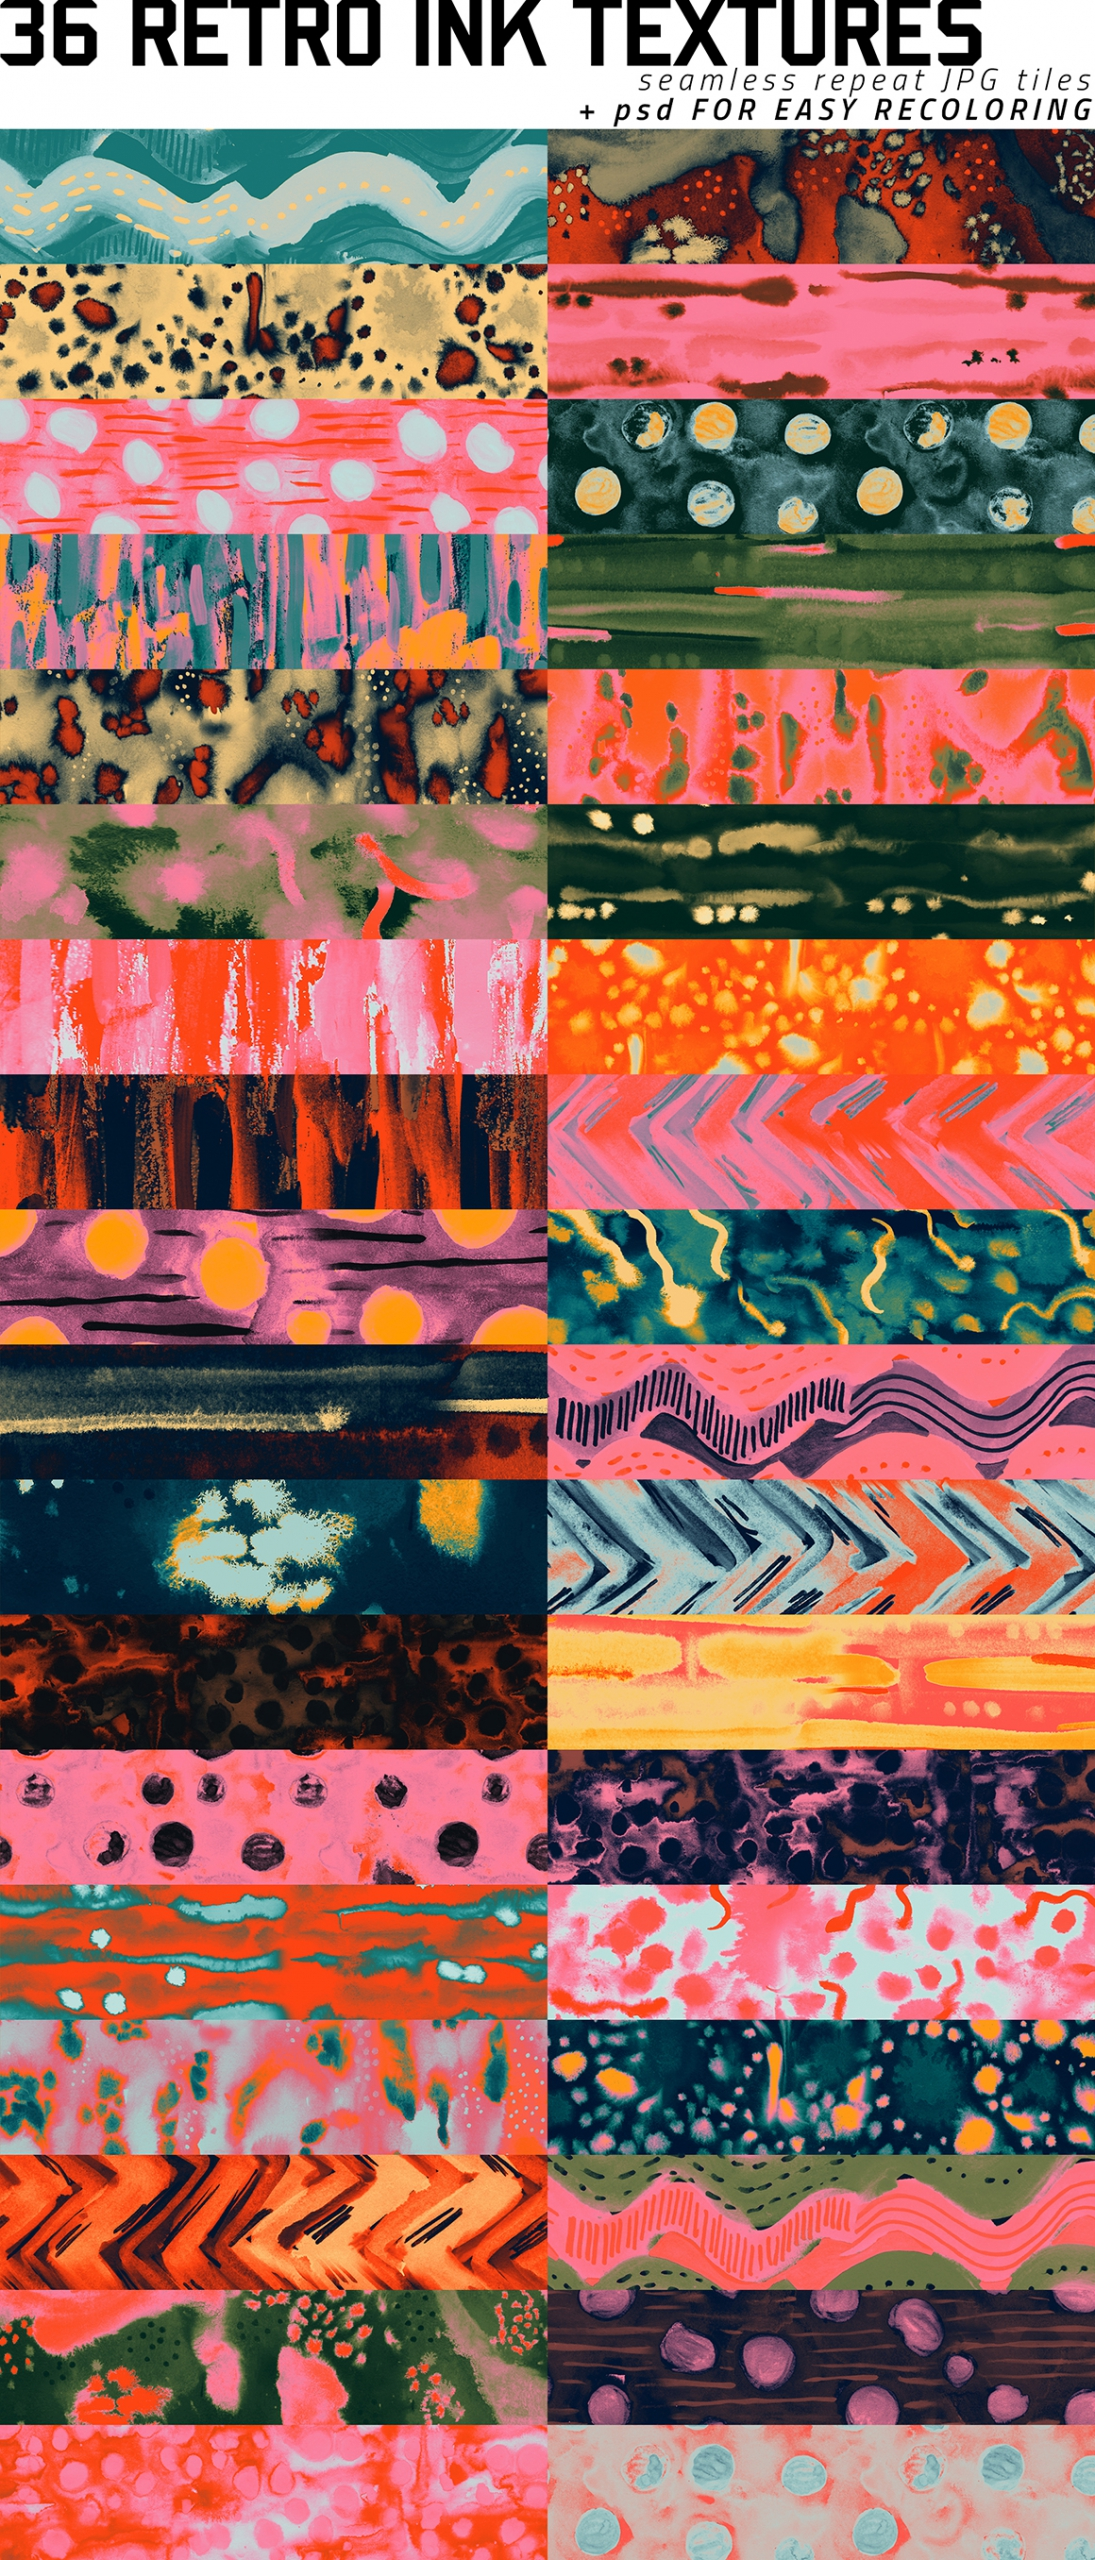 Vivid And Vibrant Ink Textures